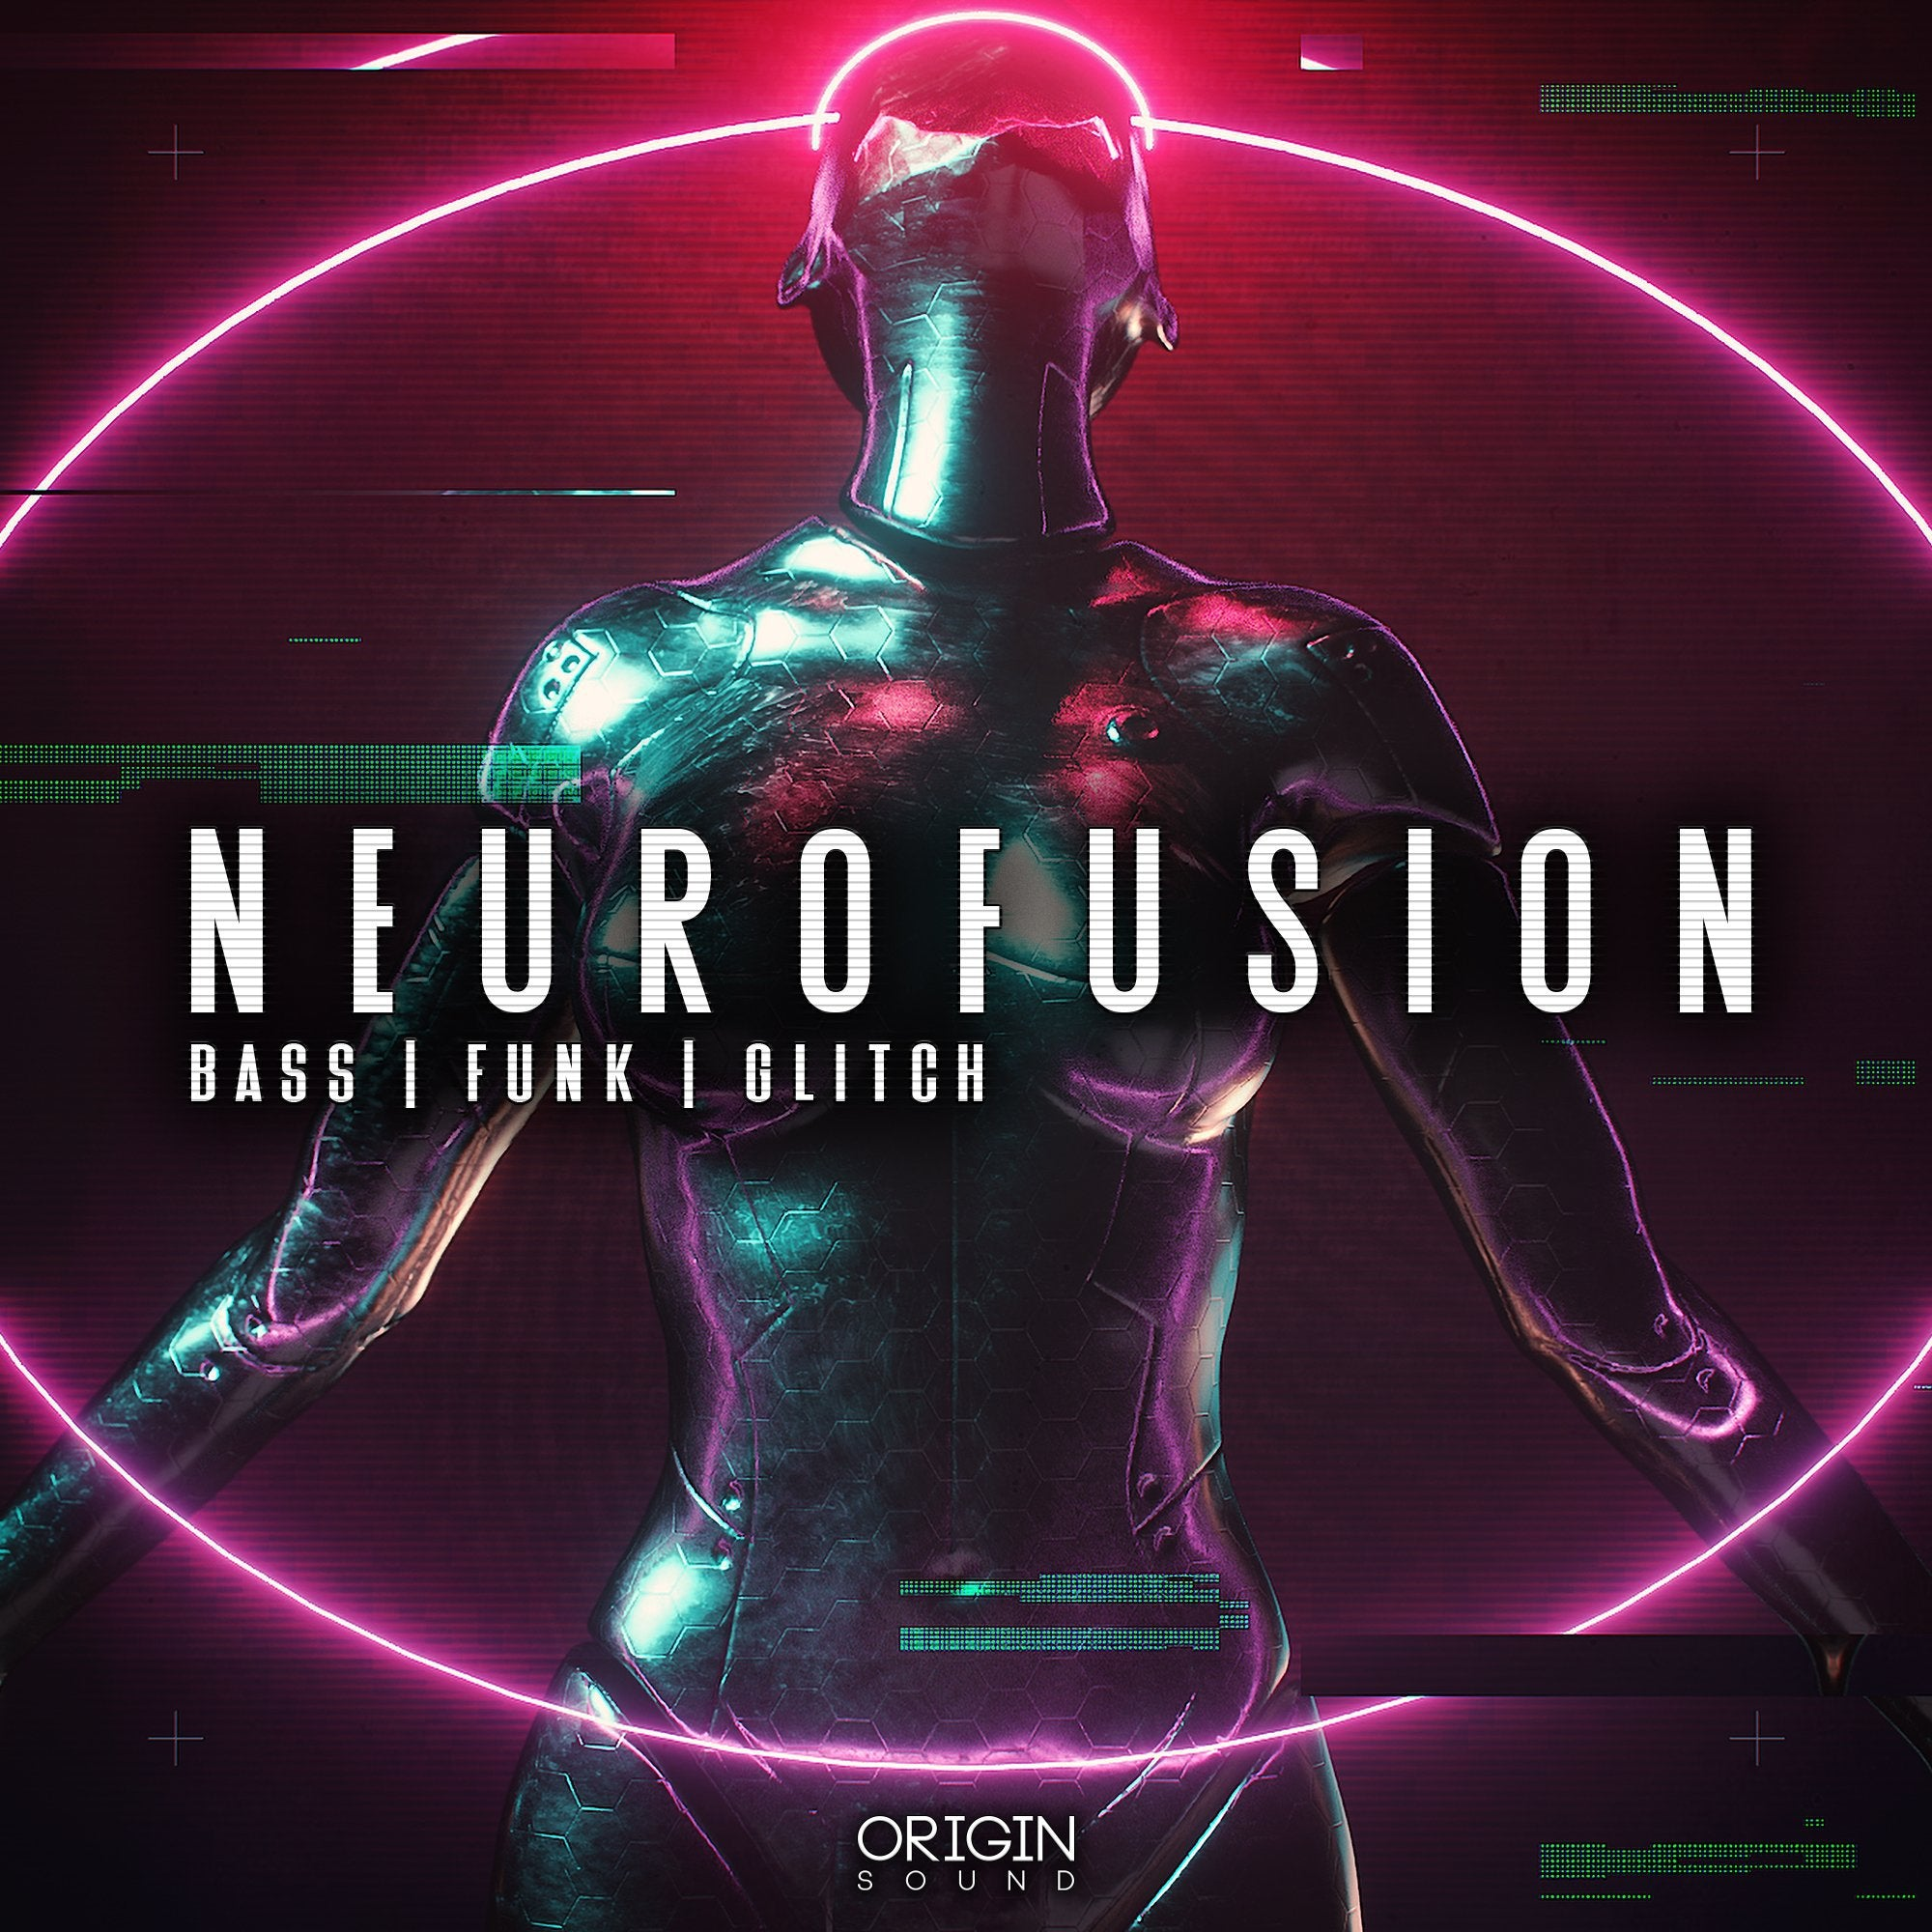 Neurofusion - Bass, Funk, Glitch Sample Pack, Origin Sound, Origin Sound - Origin Sound samples royalty free fundamental ambience pack edm electronic ableton live fl studio logic pro piano drums keys bass chords midi melodies IDM organic downtempo tisoki presets elysian utopia free samples